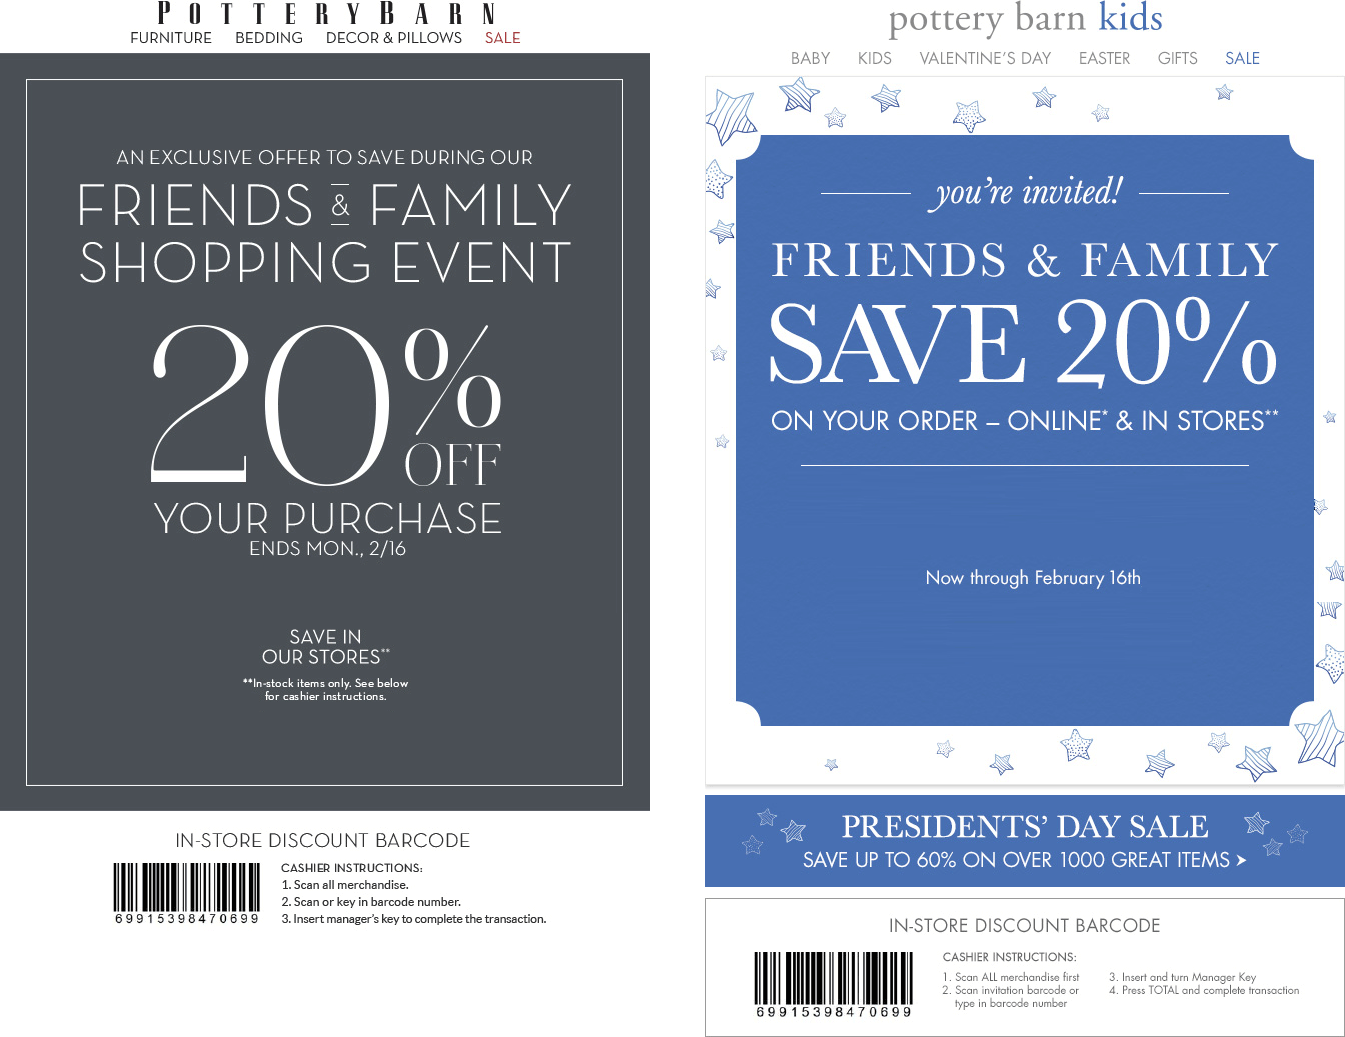 pottery barn coupons 20% off at pottery barn \u0026 pottery barn kids20% off at pottery barn \u0026 pottery barn kids